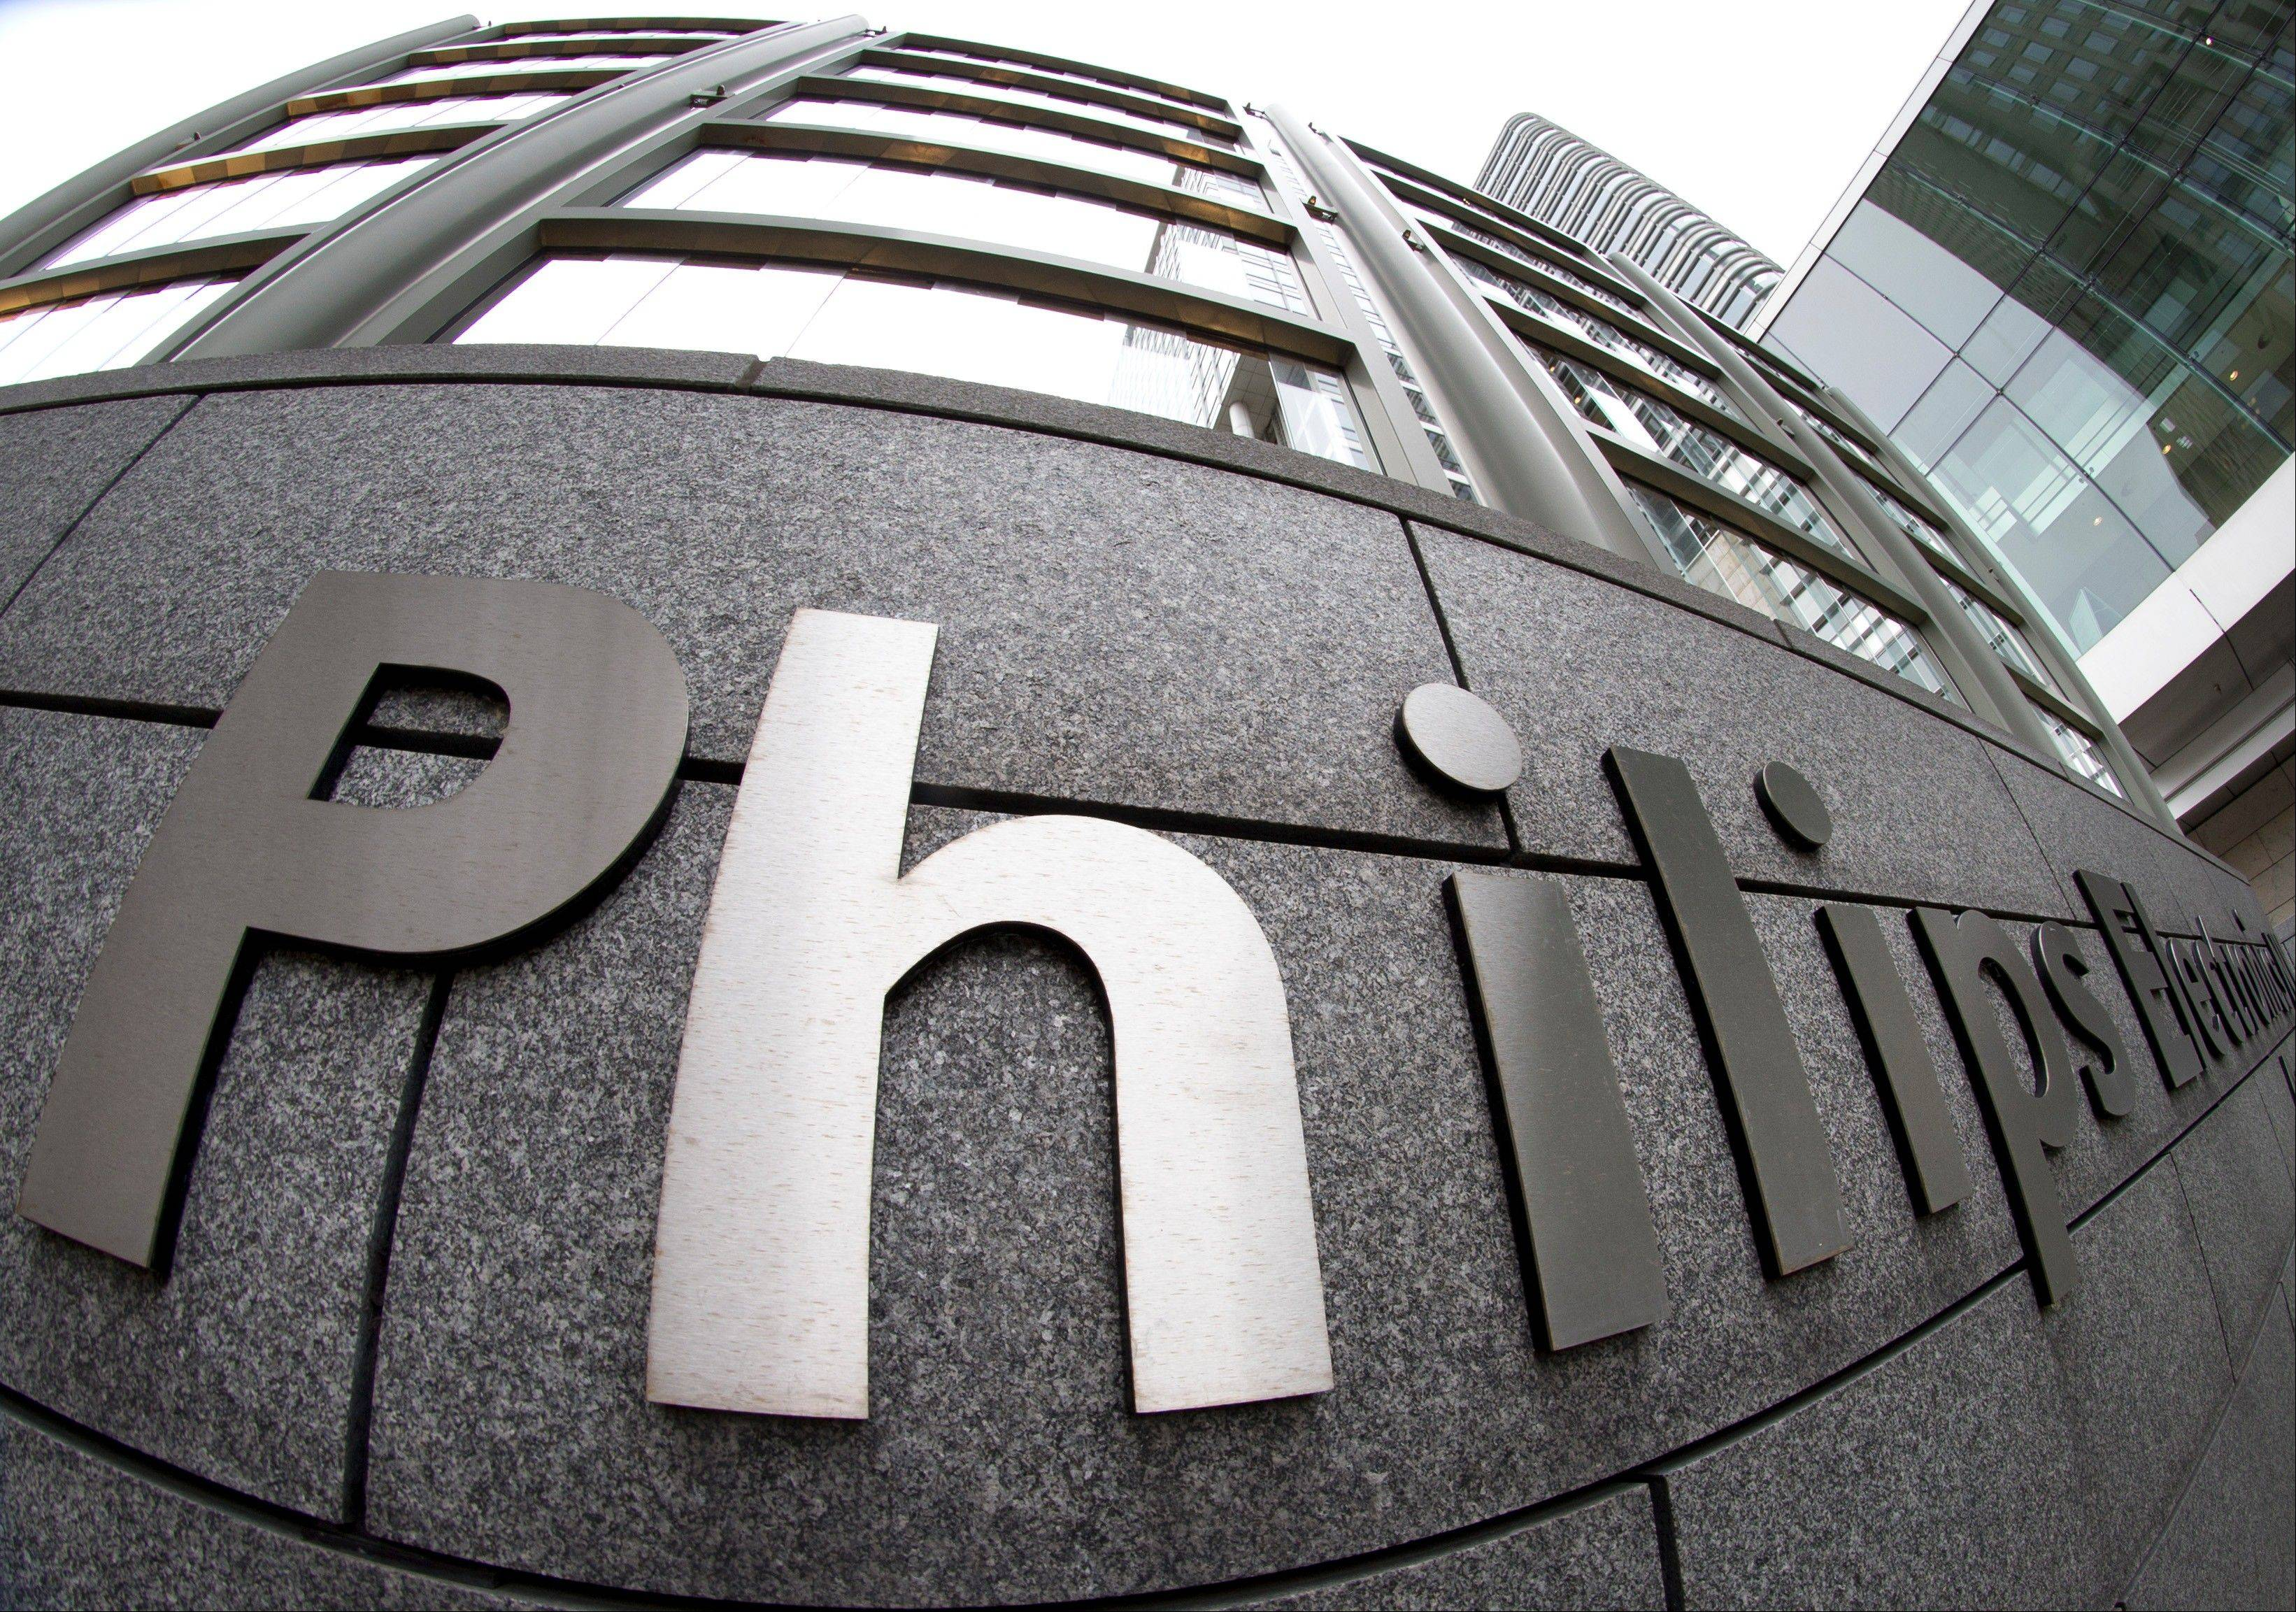 Exterior view of the headquarters of Philips in Amsterdam, Netherlands.